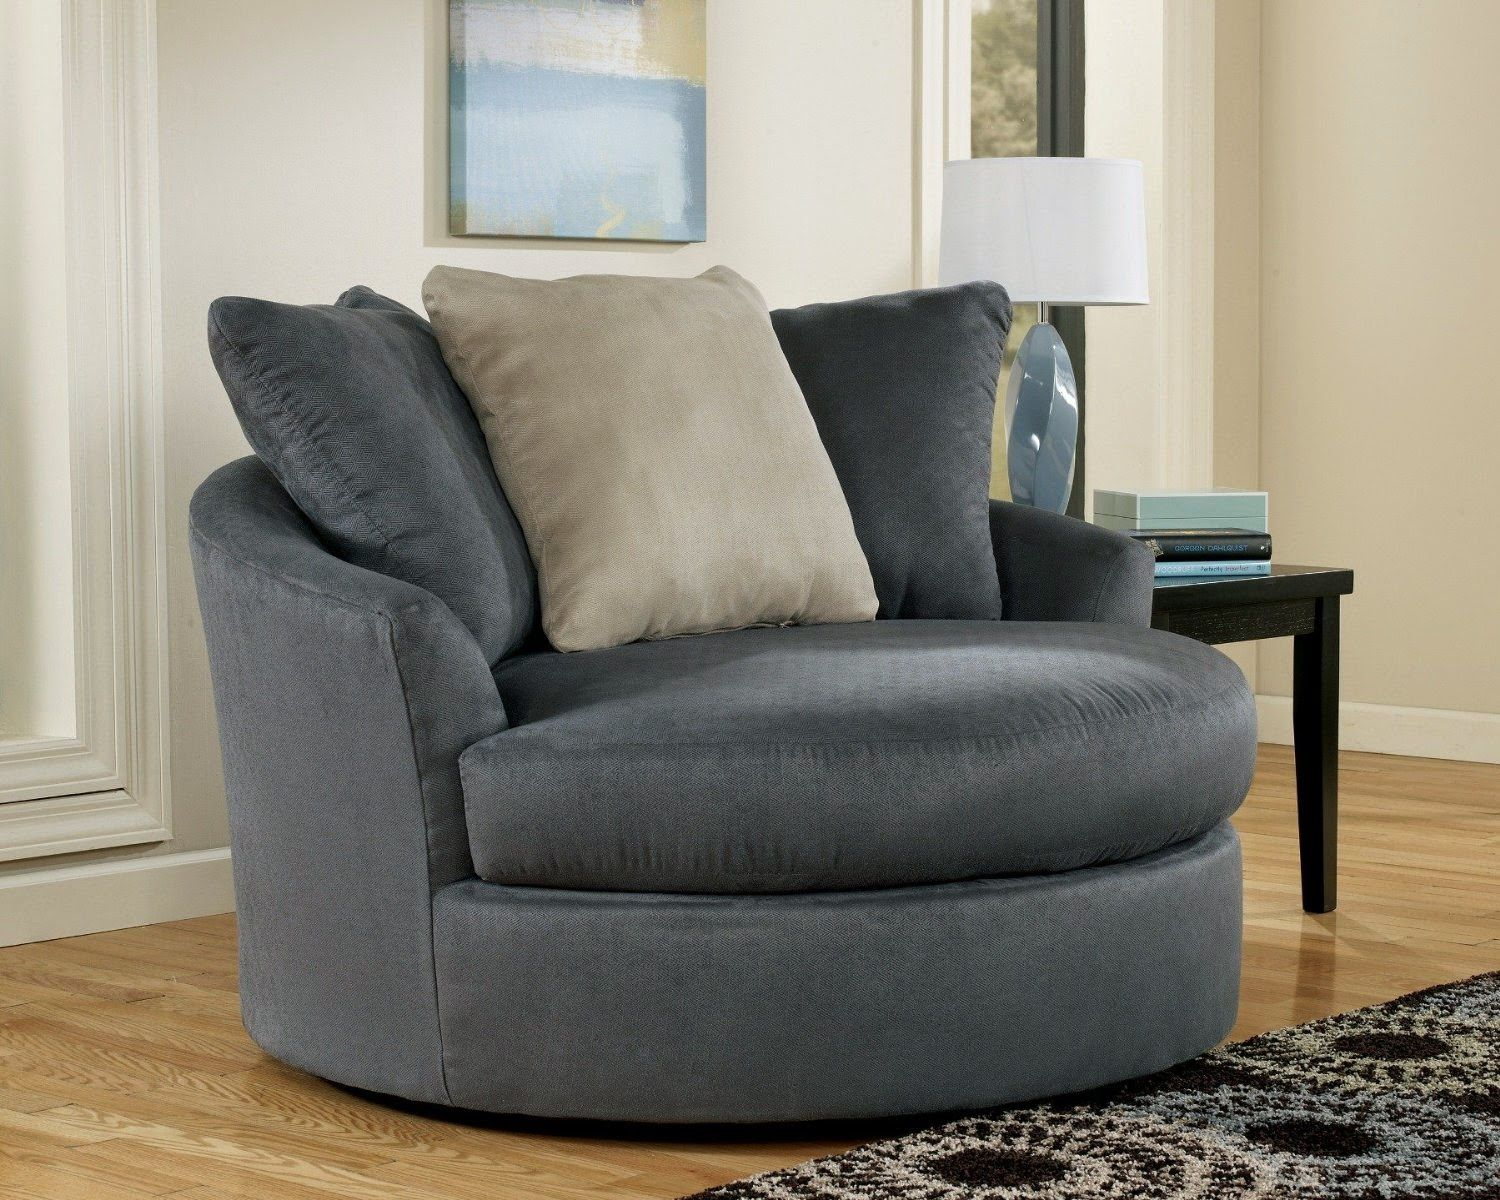 Snuggle Chairs Cuddle Couch Cuddle Couch For Sale Shopping Pinterest